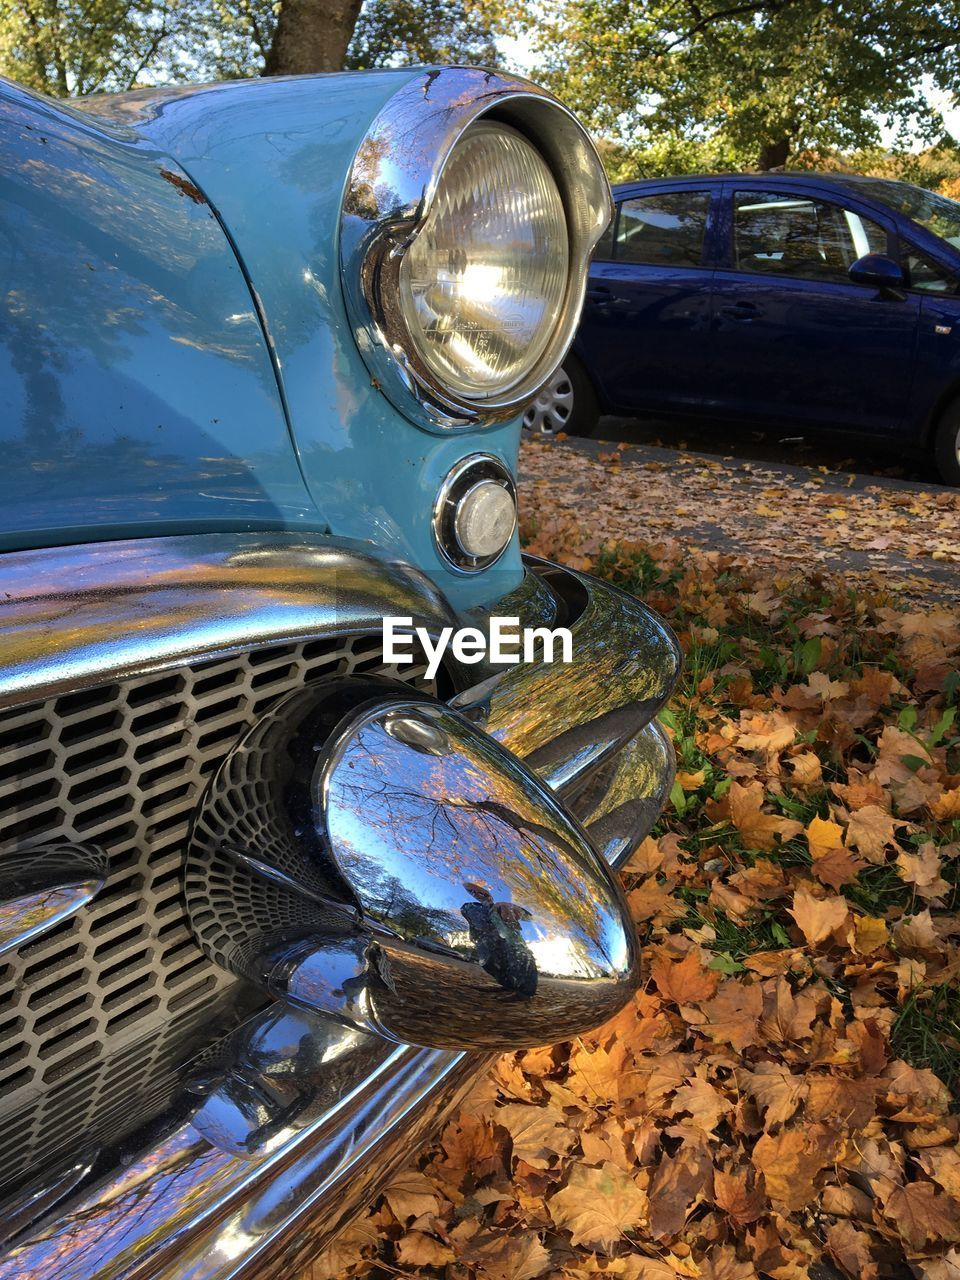 car, motor vehicle, mode of transportation, land vehicle, transportation, headlight, metal, day, vintage car, stationary, retro styled, outdoors, no people, nature, tree, reflection, vehicle hood, chrome, close-up, silver colored